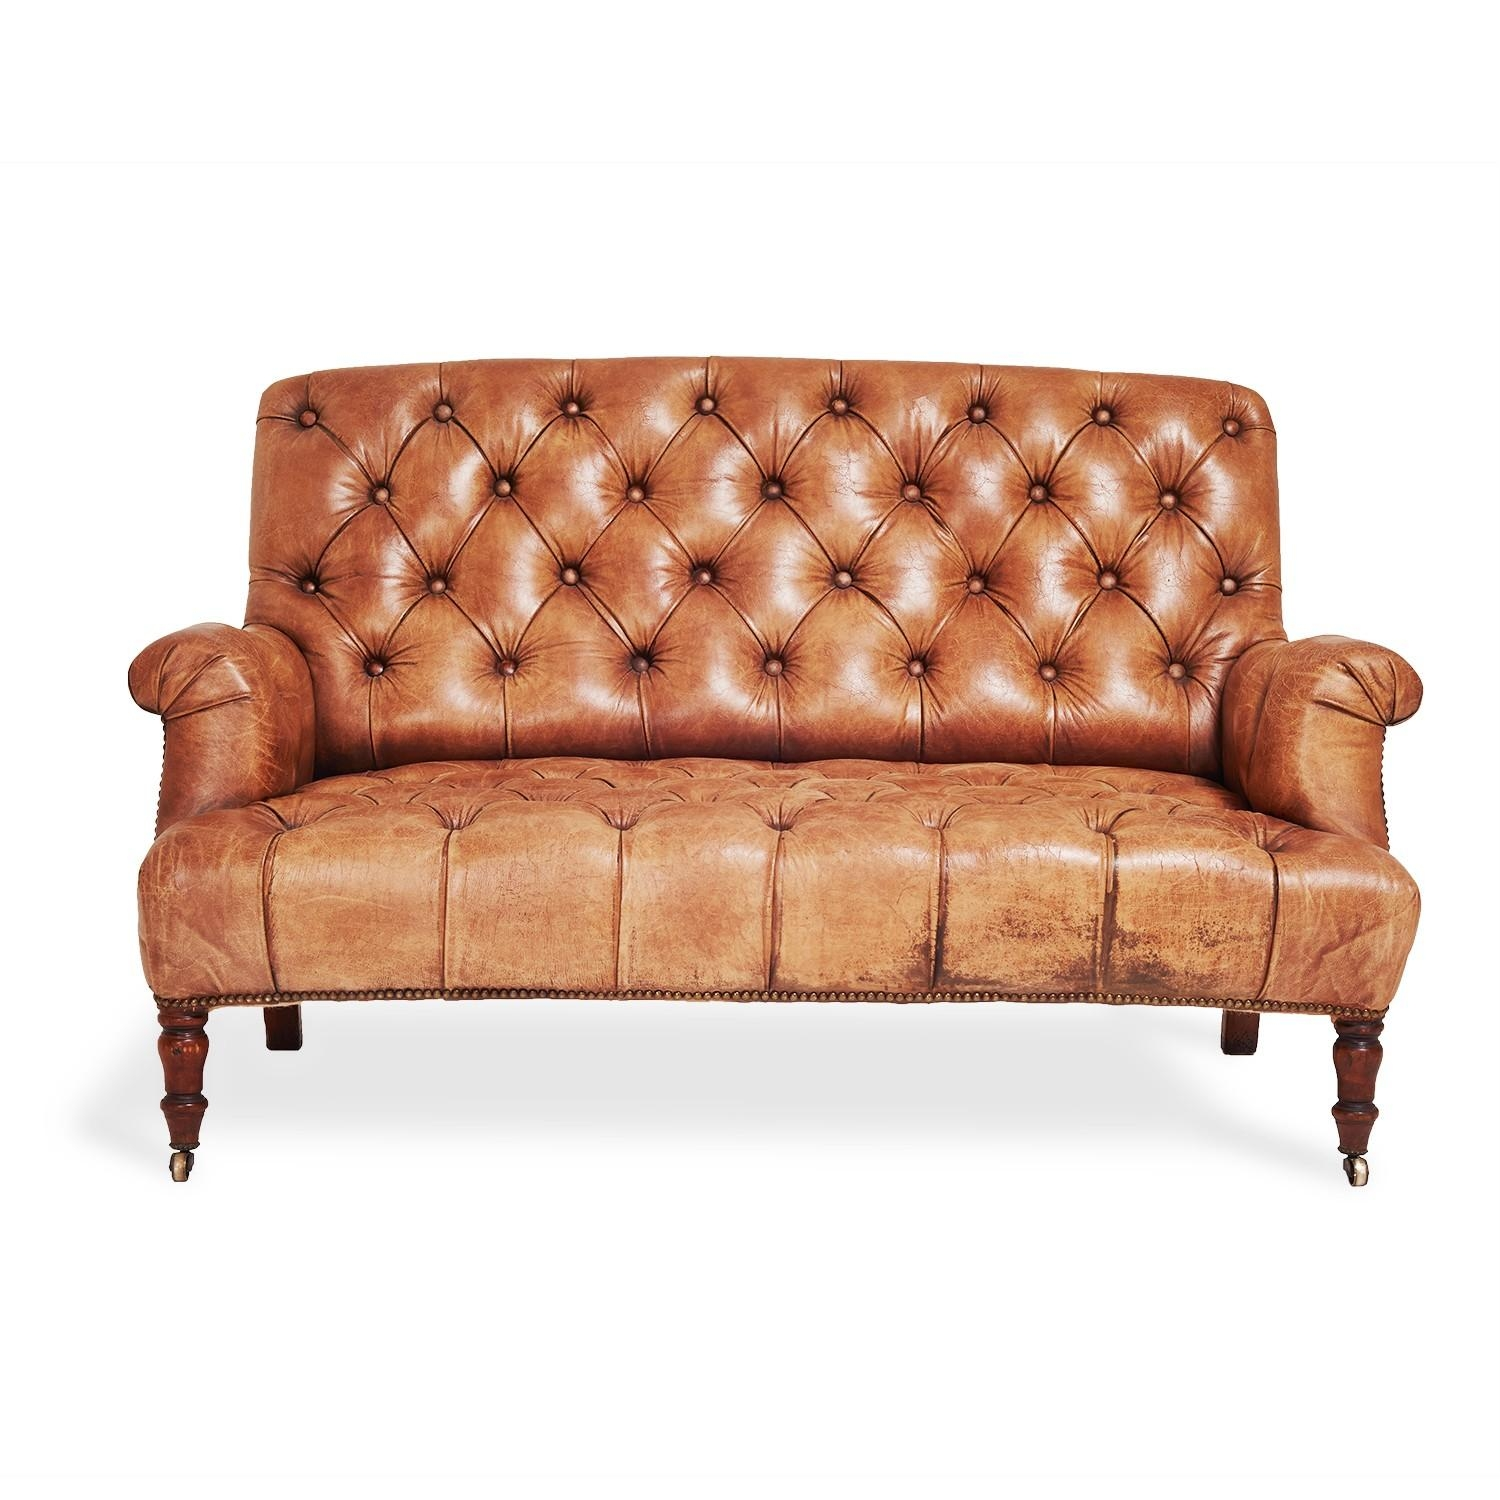 Furniture: Exquisite Comfort With Leather Tufted Sofa With Brown Leather Tufted Sofas (Image 9 of 20)